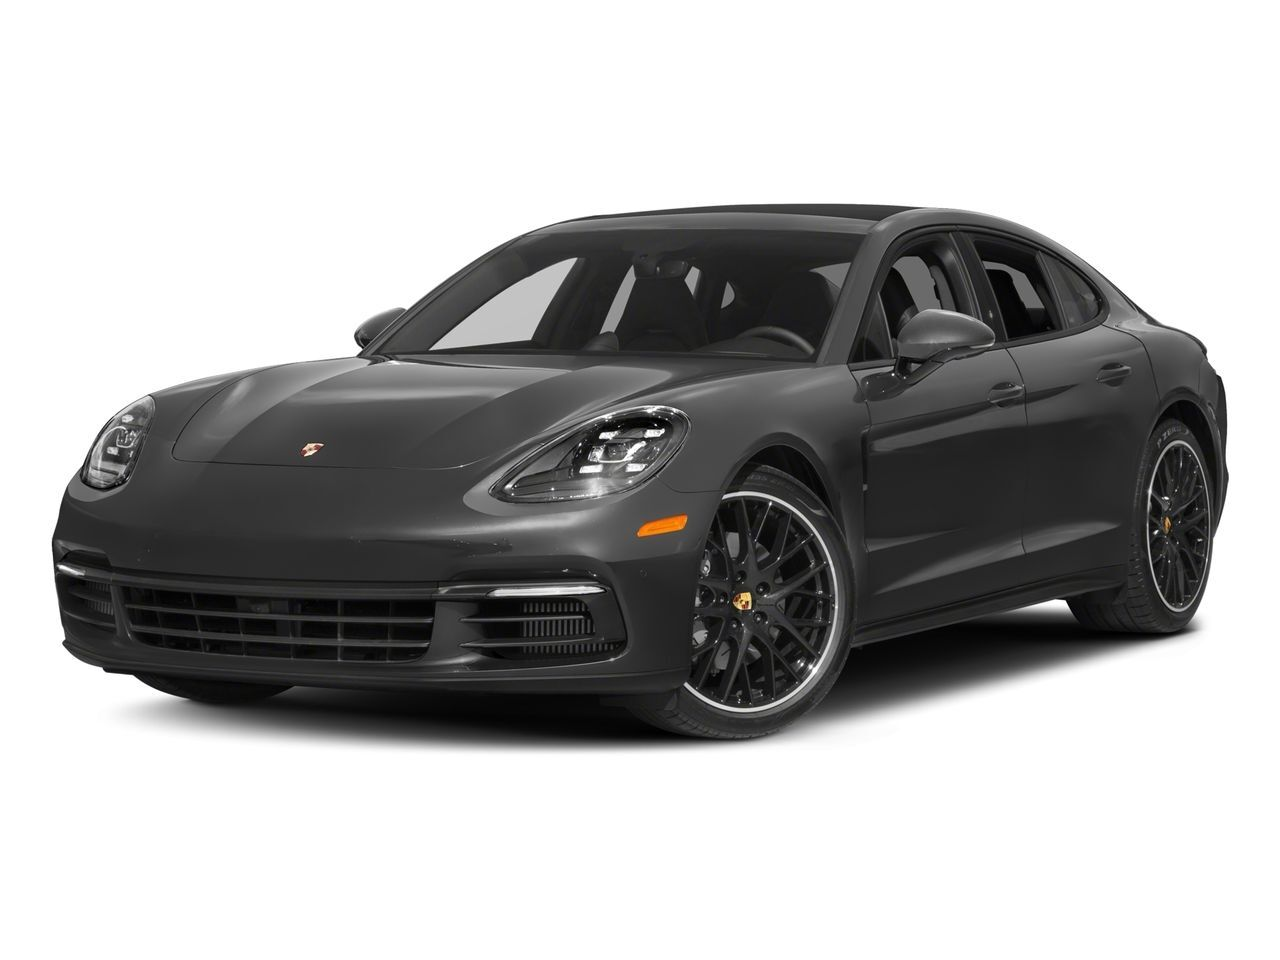 New Porsche Panamera Colorado Springs, CO